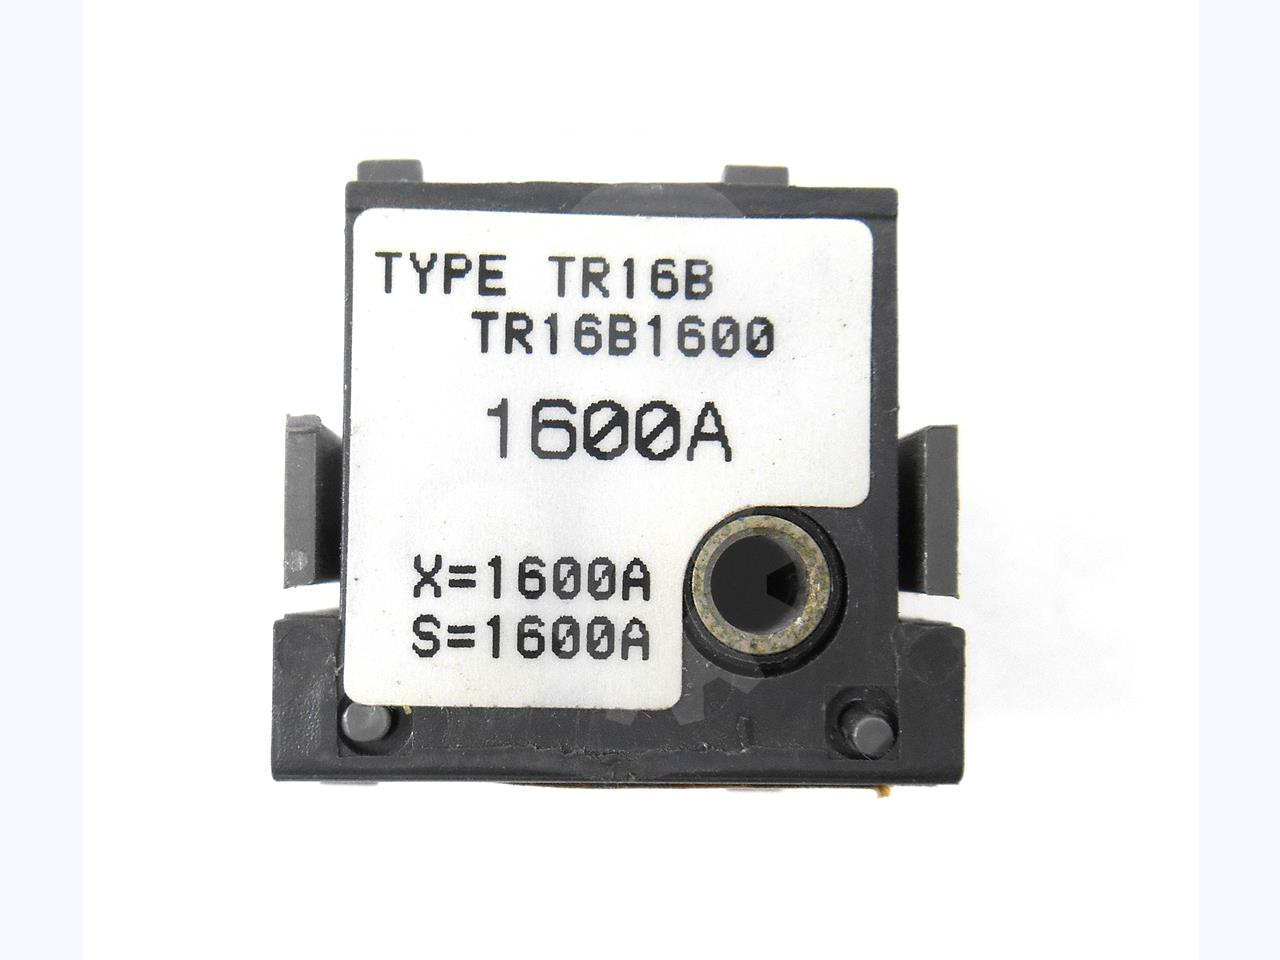 1600A GE RATING PLUG 1600A CT